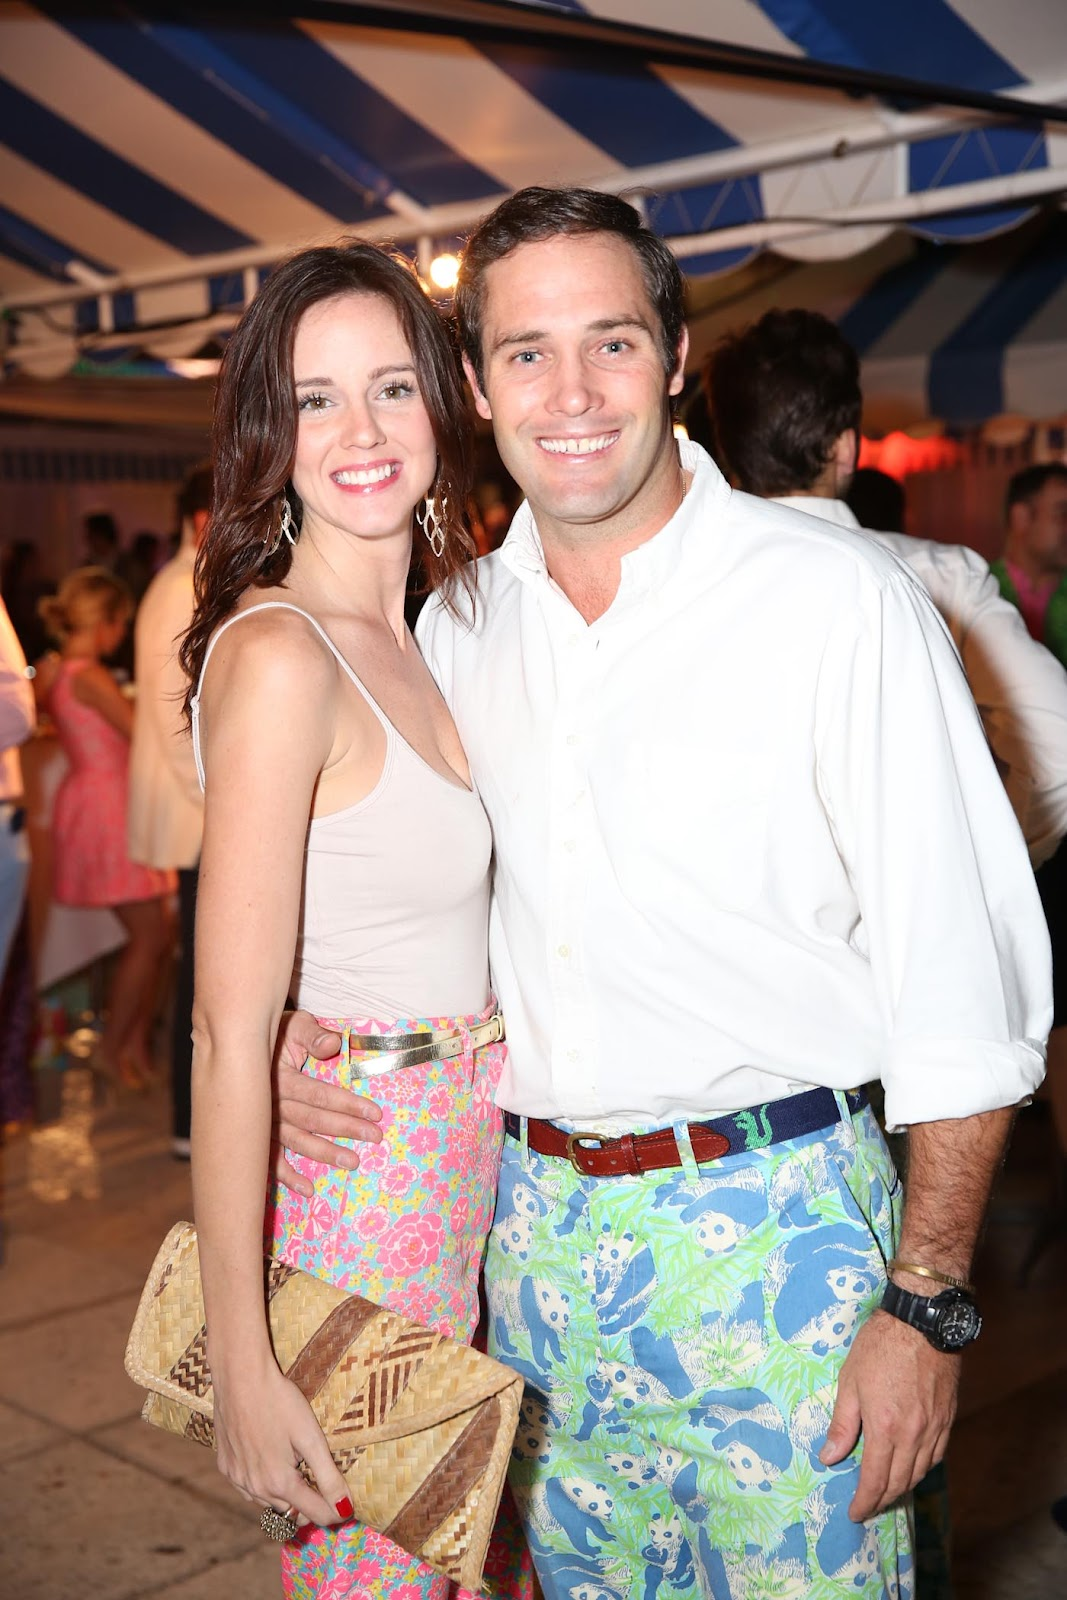 The Preppy American Lilly Pulitzer Beach Bash 2012